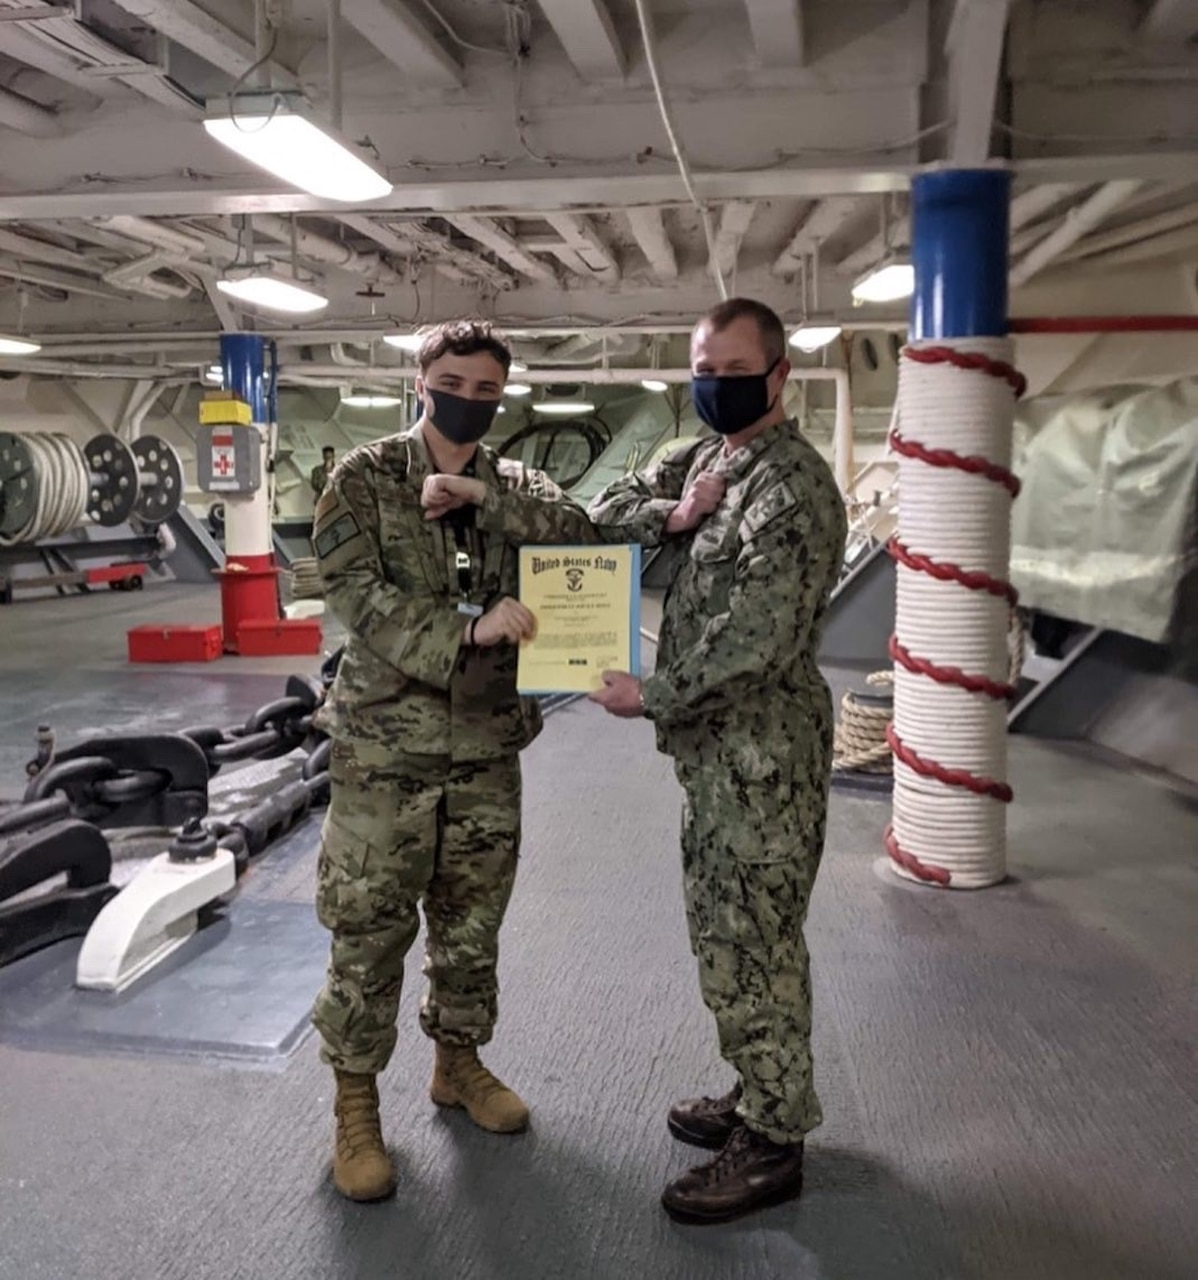 U.S. Air Force Senior Airman Alexander Garrett received an Armed Forces Service Medal from the ship's information officer for his work aboard the U.S.S. Blue Ridge (LCC-19). The 3rd Operations Support Squadron intelligence analyst was the only Airman on board.